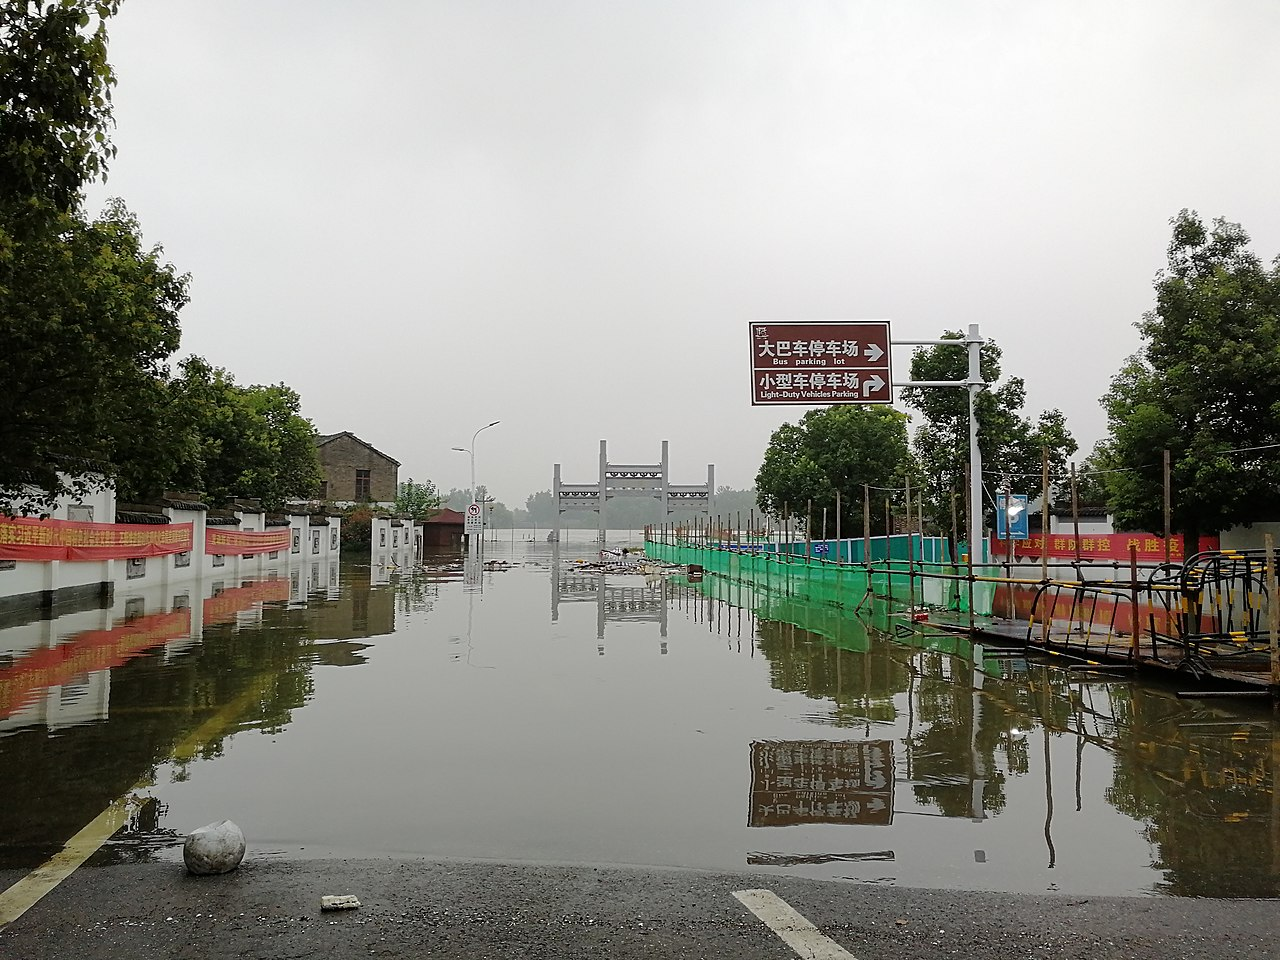 Death Toll From Heavy Flooding in China's Henan Province Hits 33 People, Over 3 Mln in Disaster Area